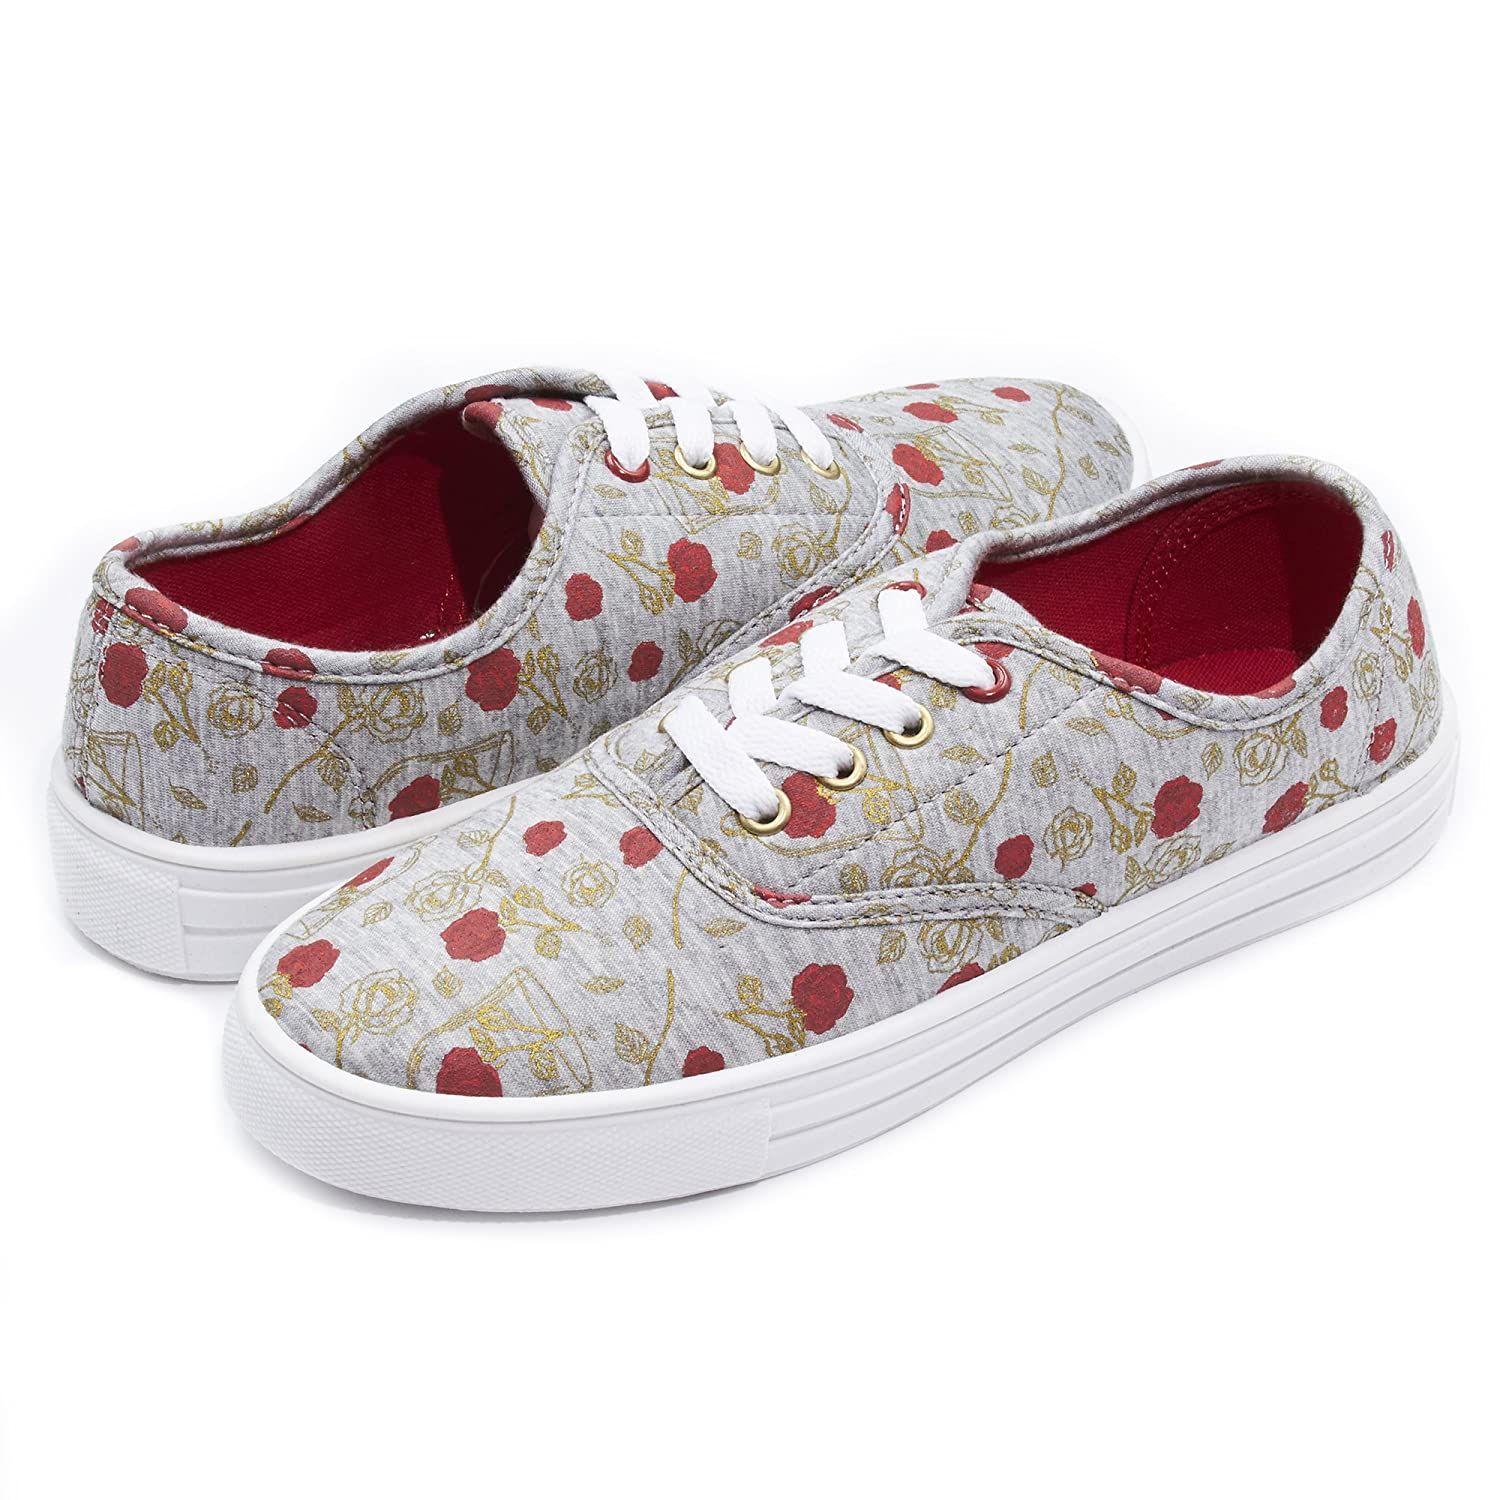 Disney Fairytale Junior Teen Girls Lace up Low Top Canvas Sneakers (See More Designs and Sizes) B074CHWY79 10 B(M) US|Heather Grey